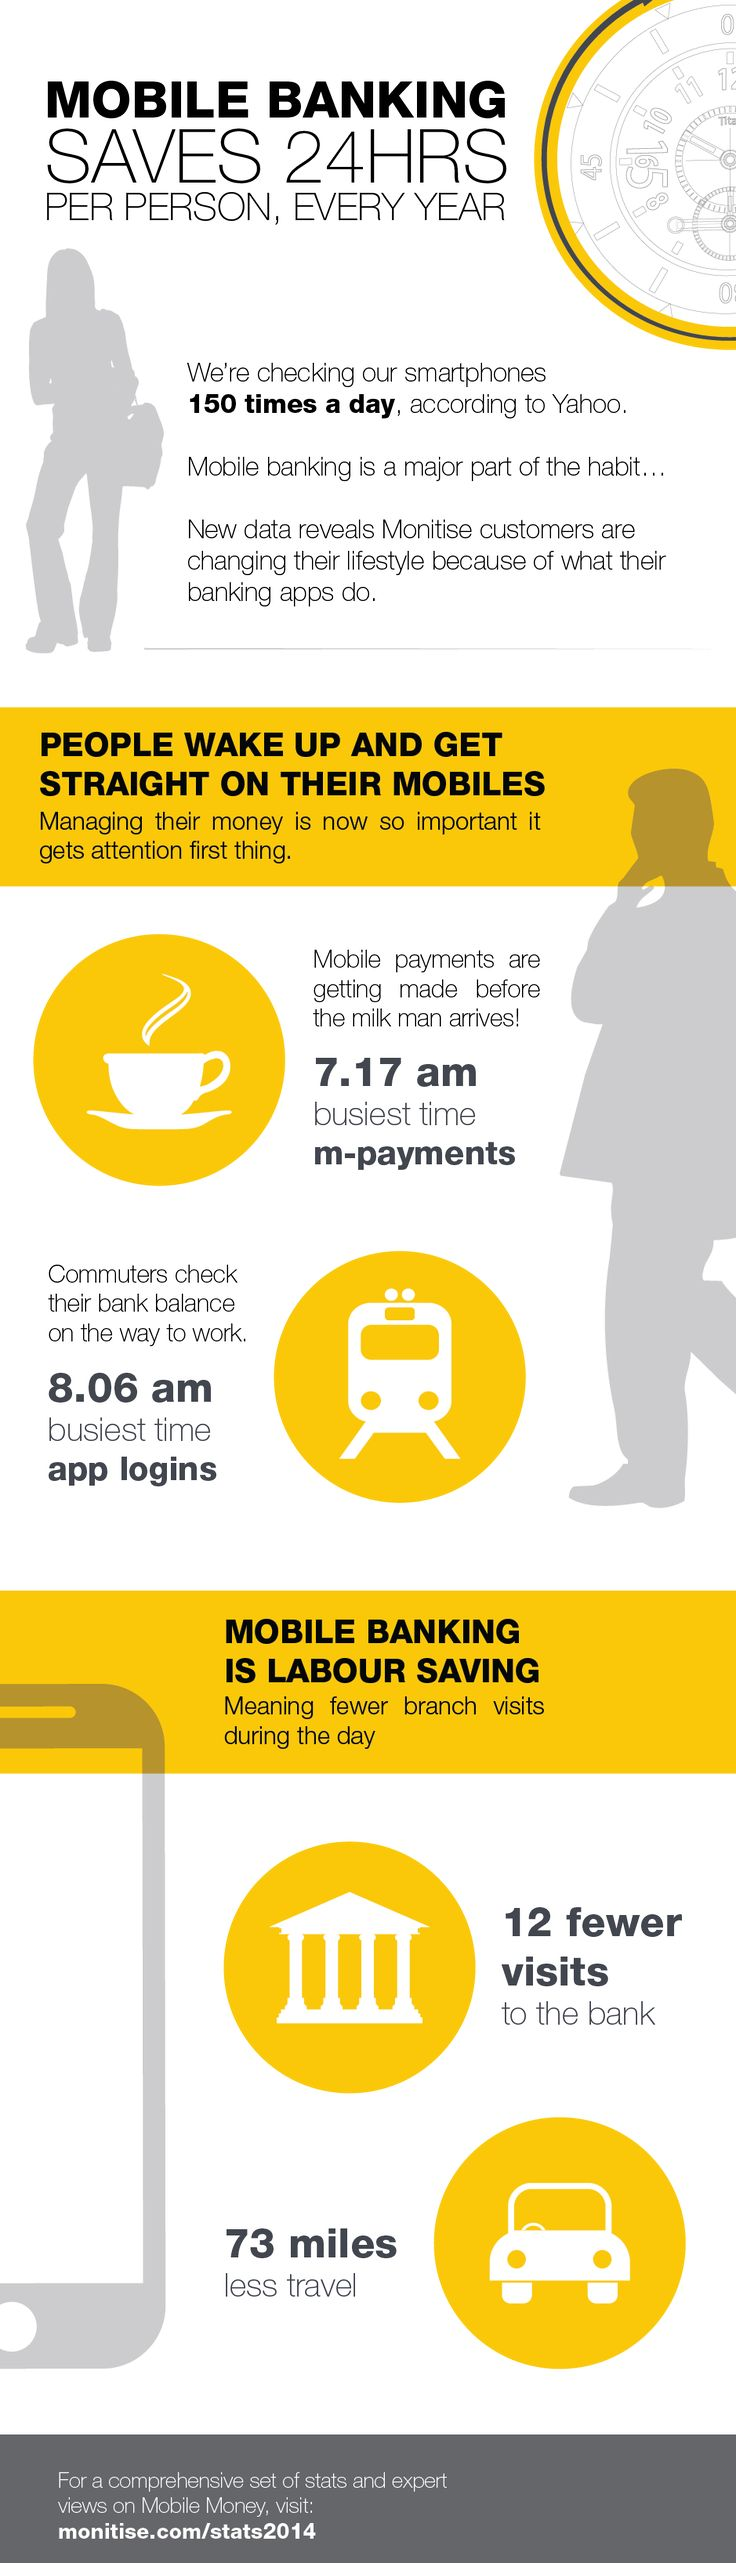 Mobile Banking is saving 24 hours per person, every year